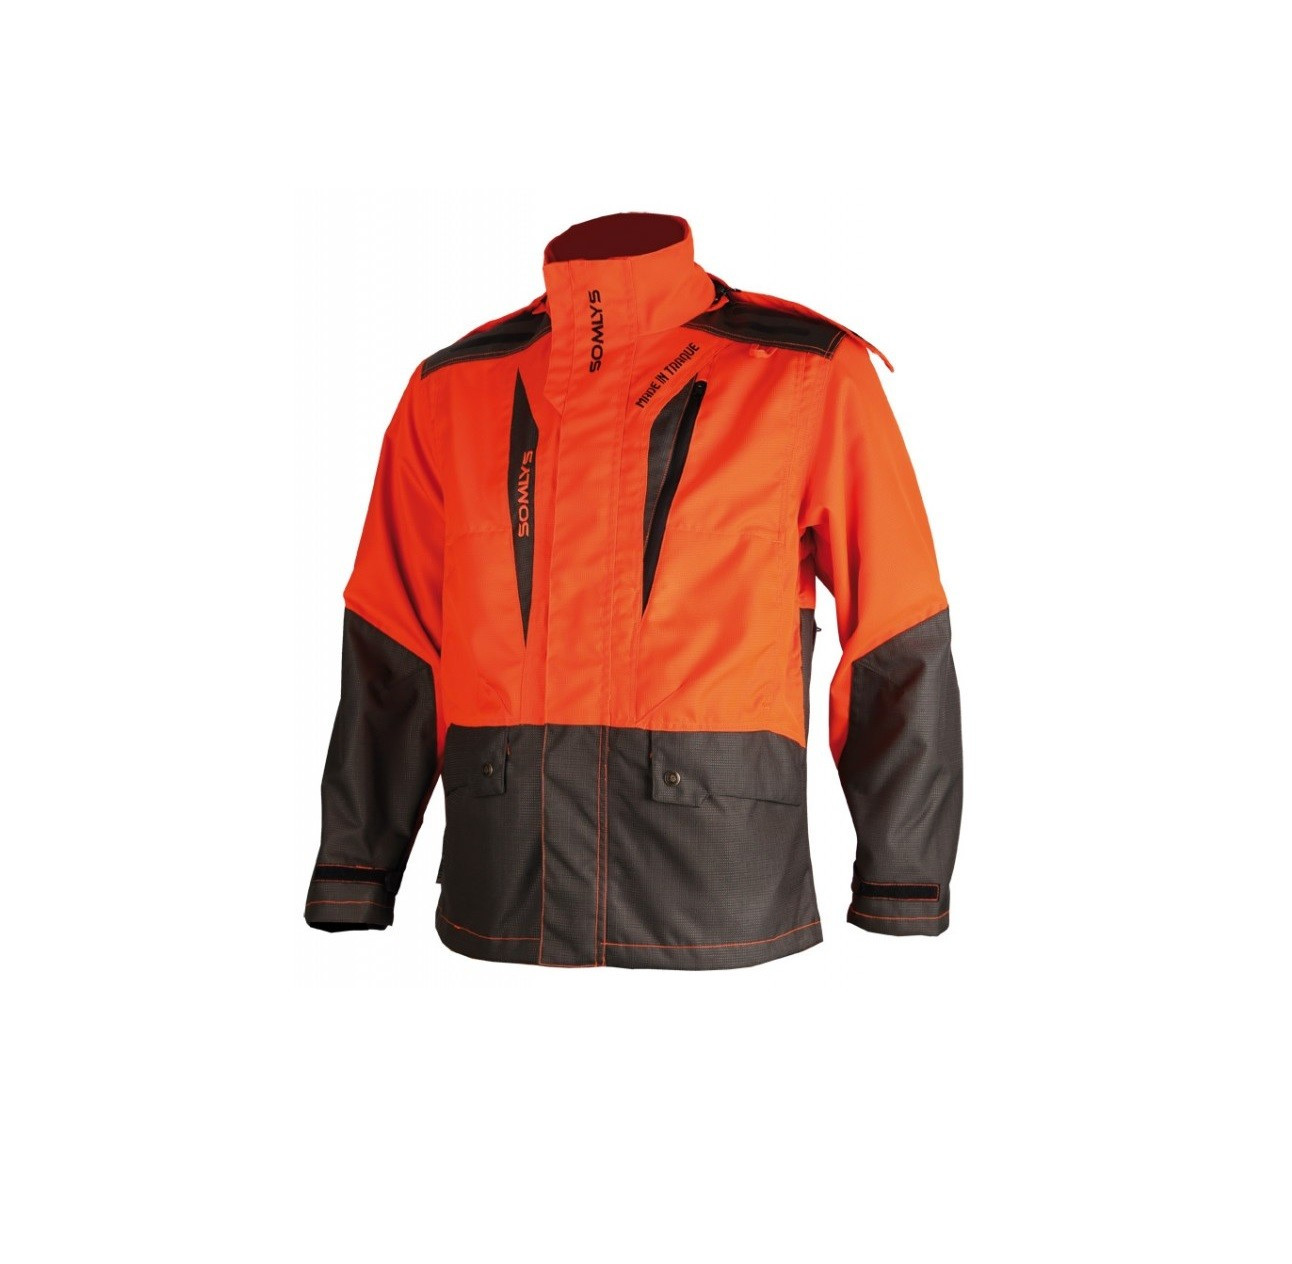 Vêtements de chasse Veste de traque Orange 453N Made In Traque Somlys - 1